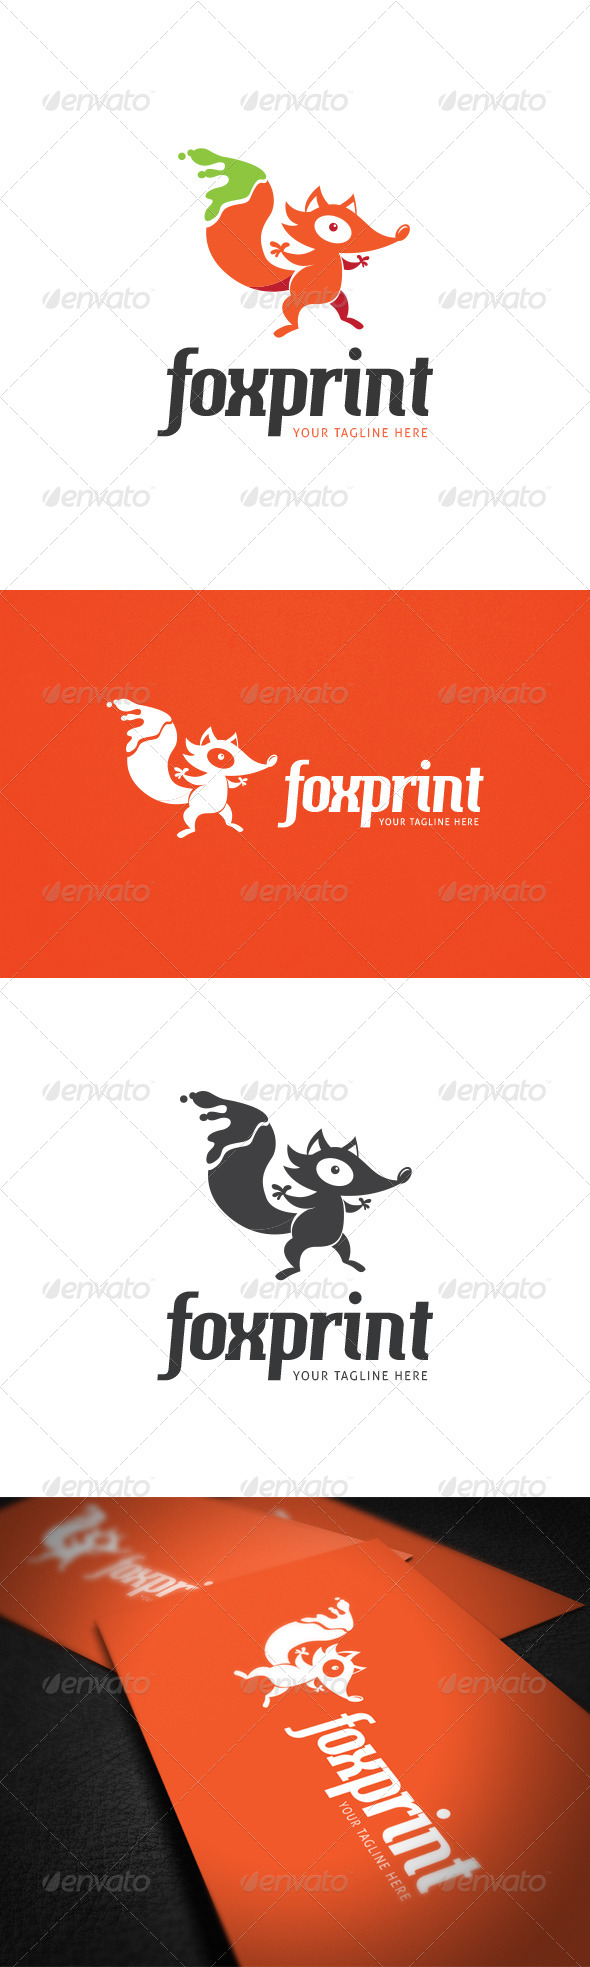 GraphicRiver Foxprint Logo Template 8021756